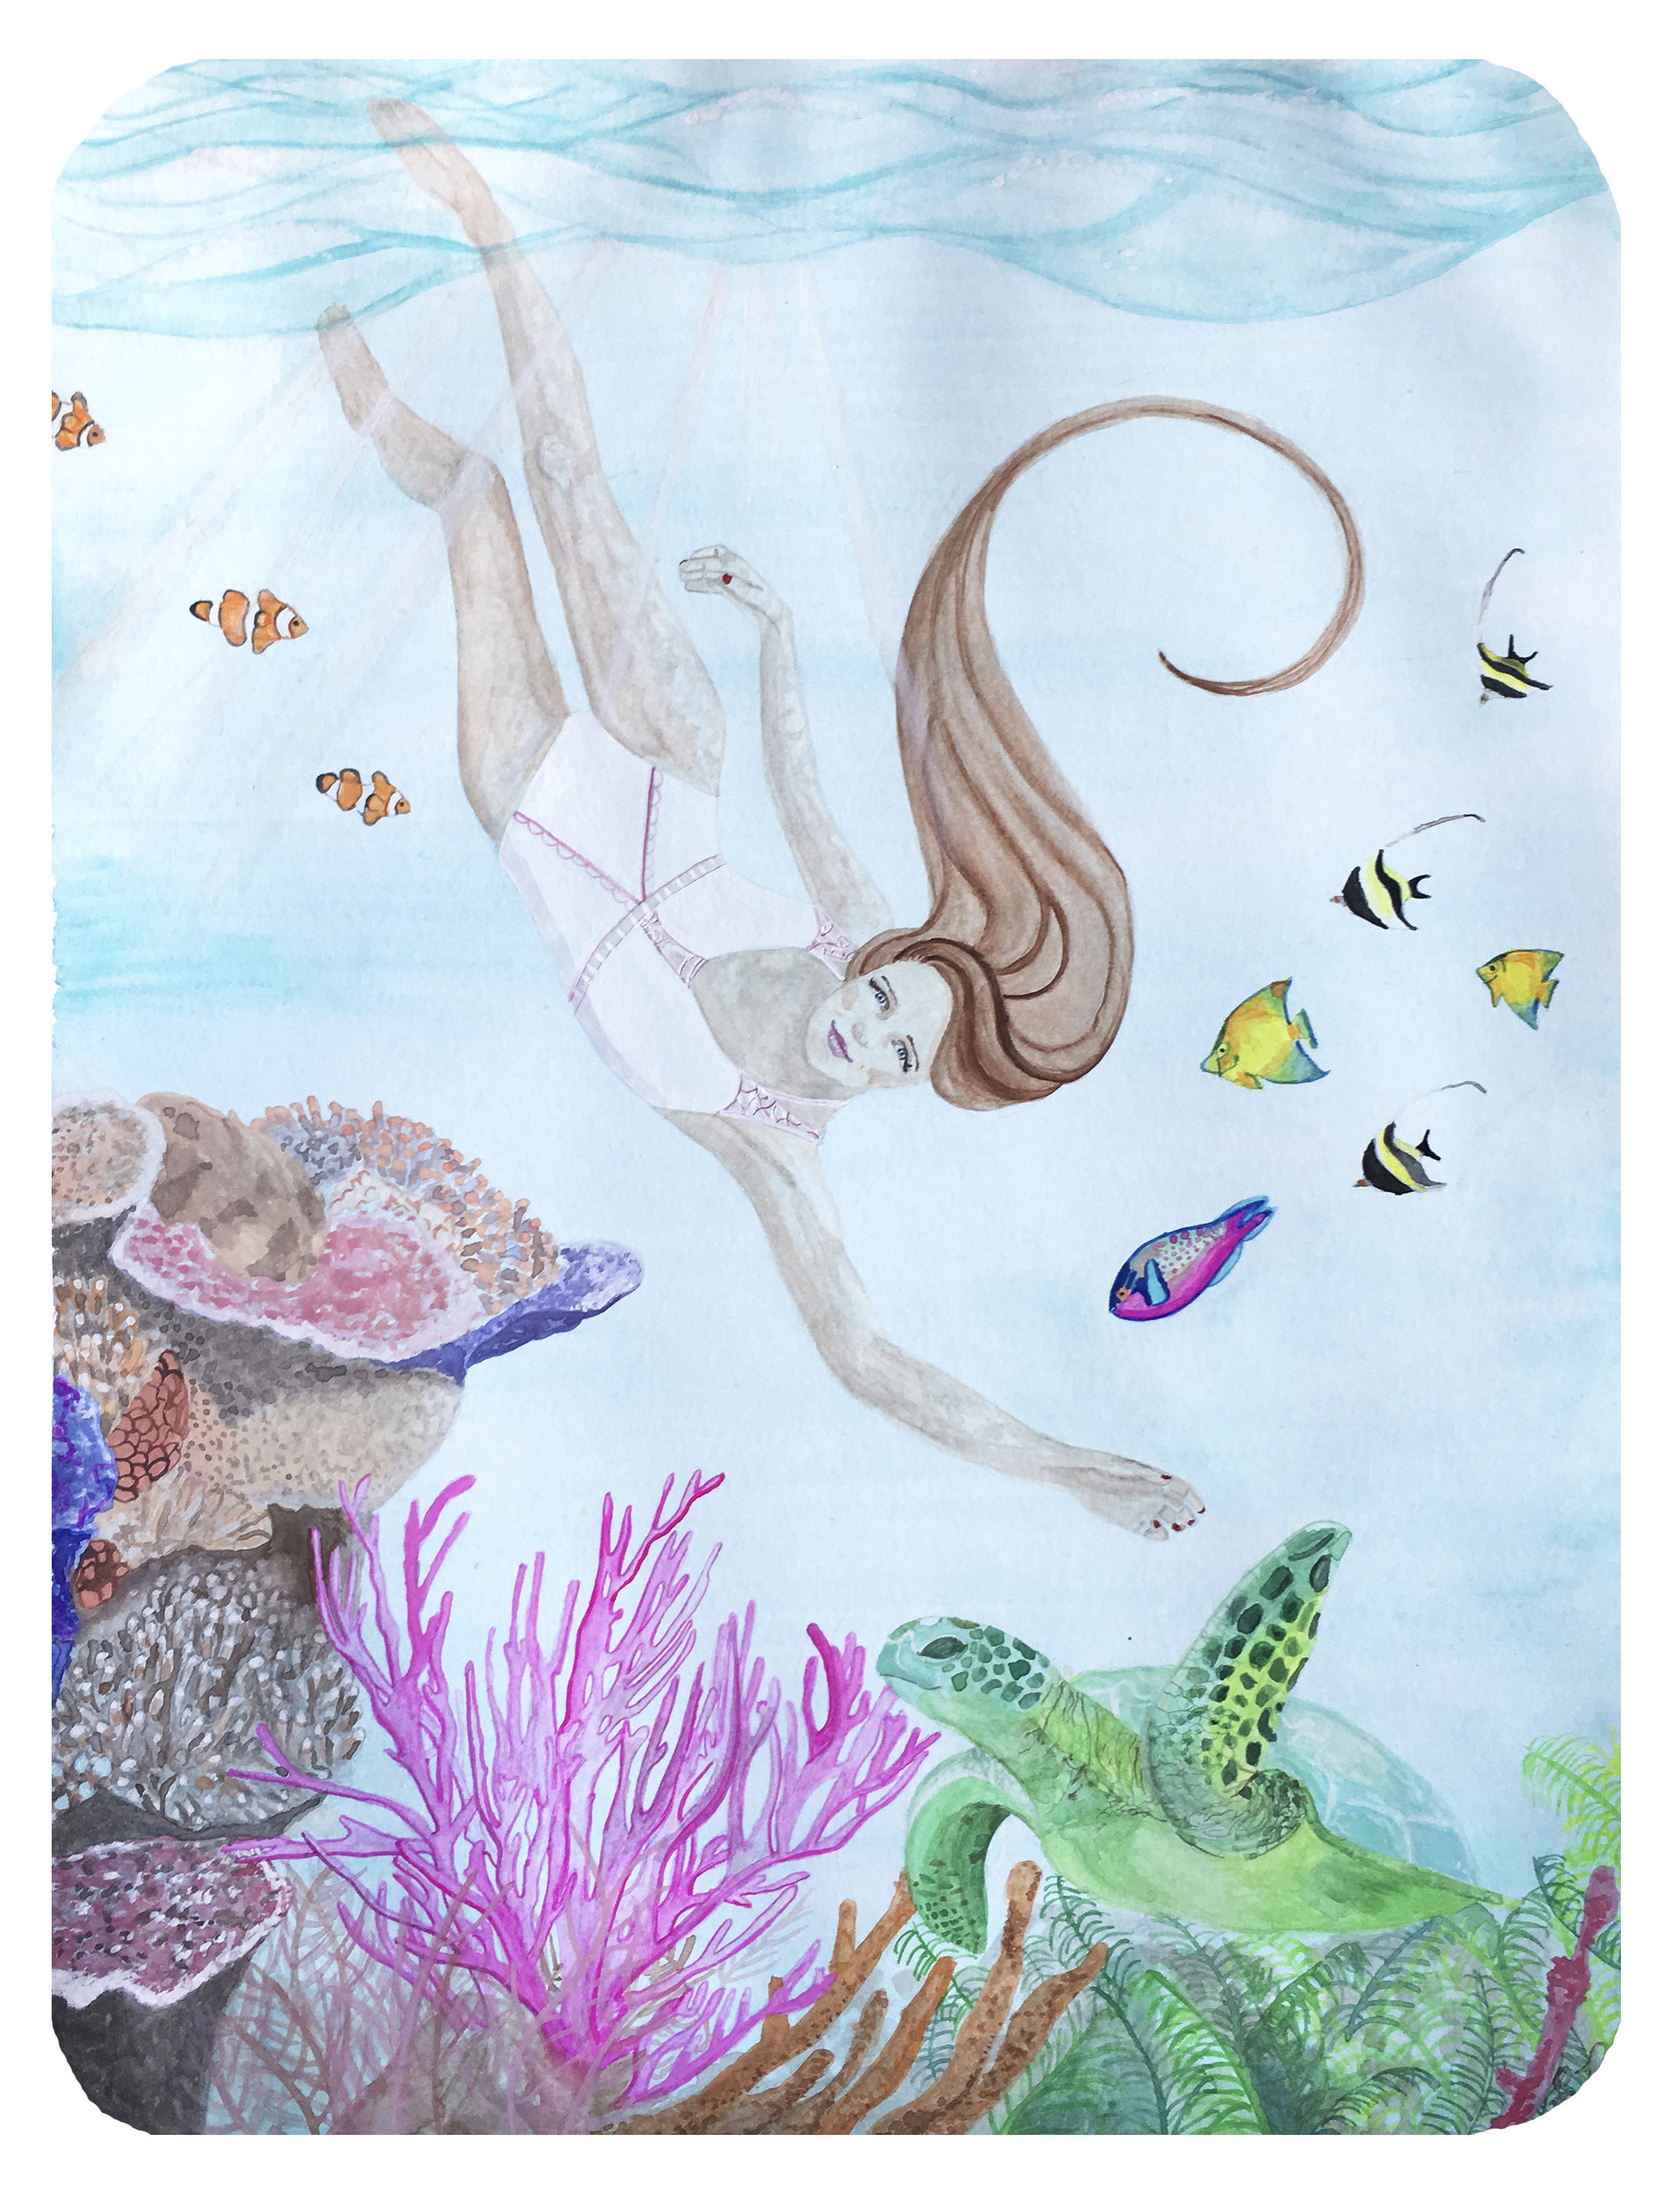 Coral Reef_Elle Powell Art.jpg